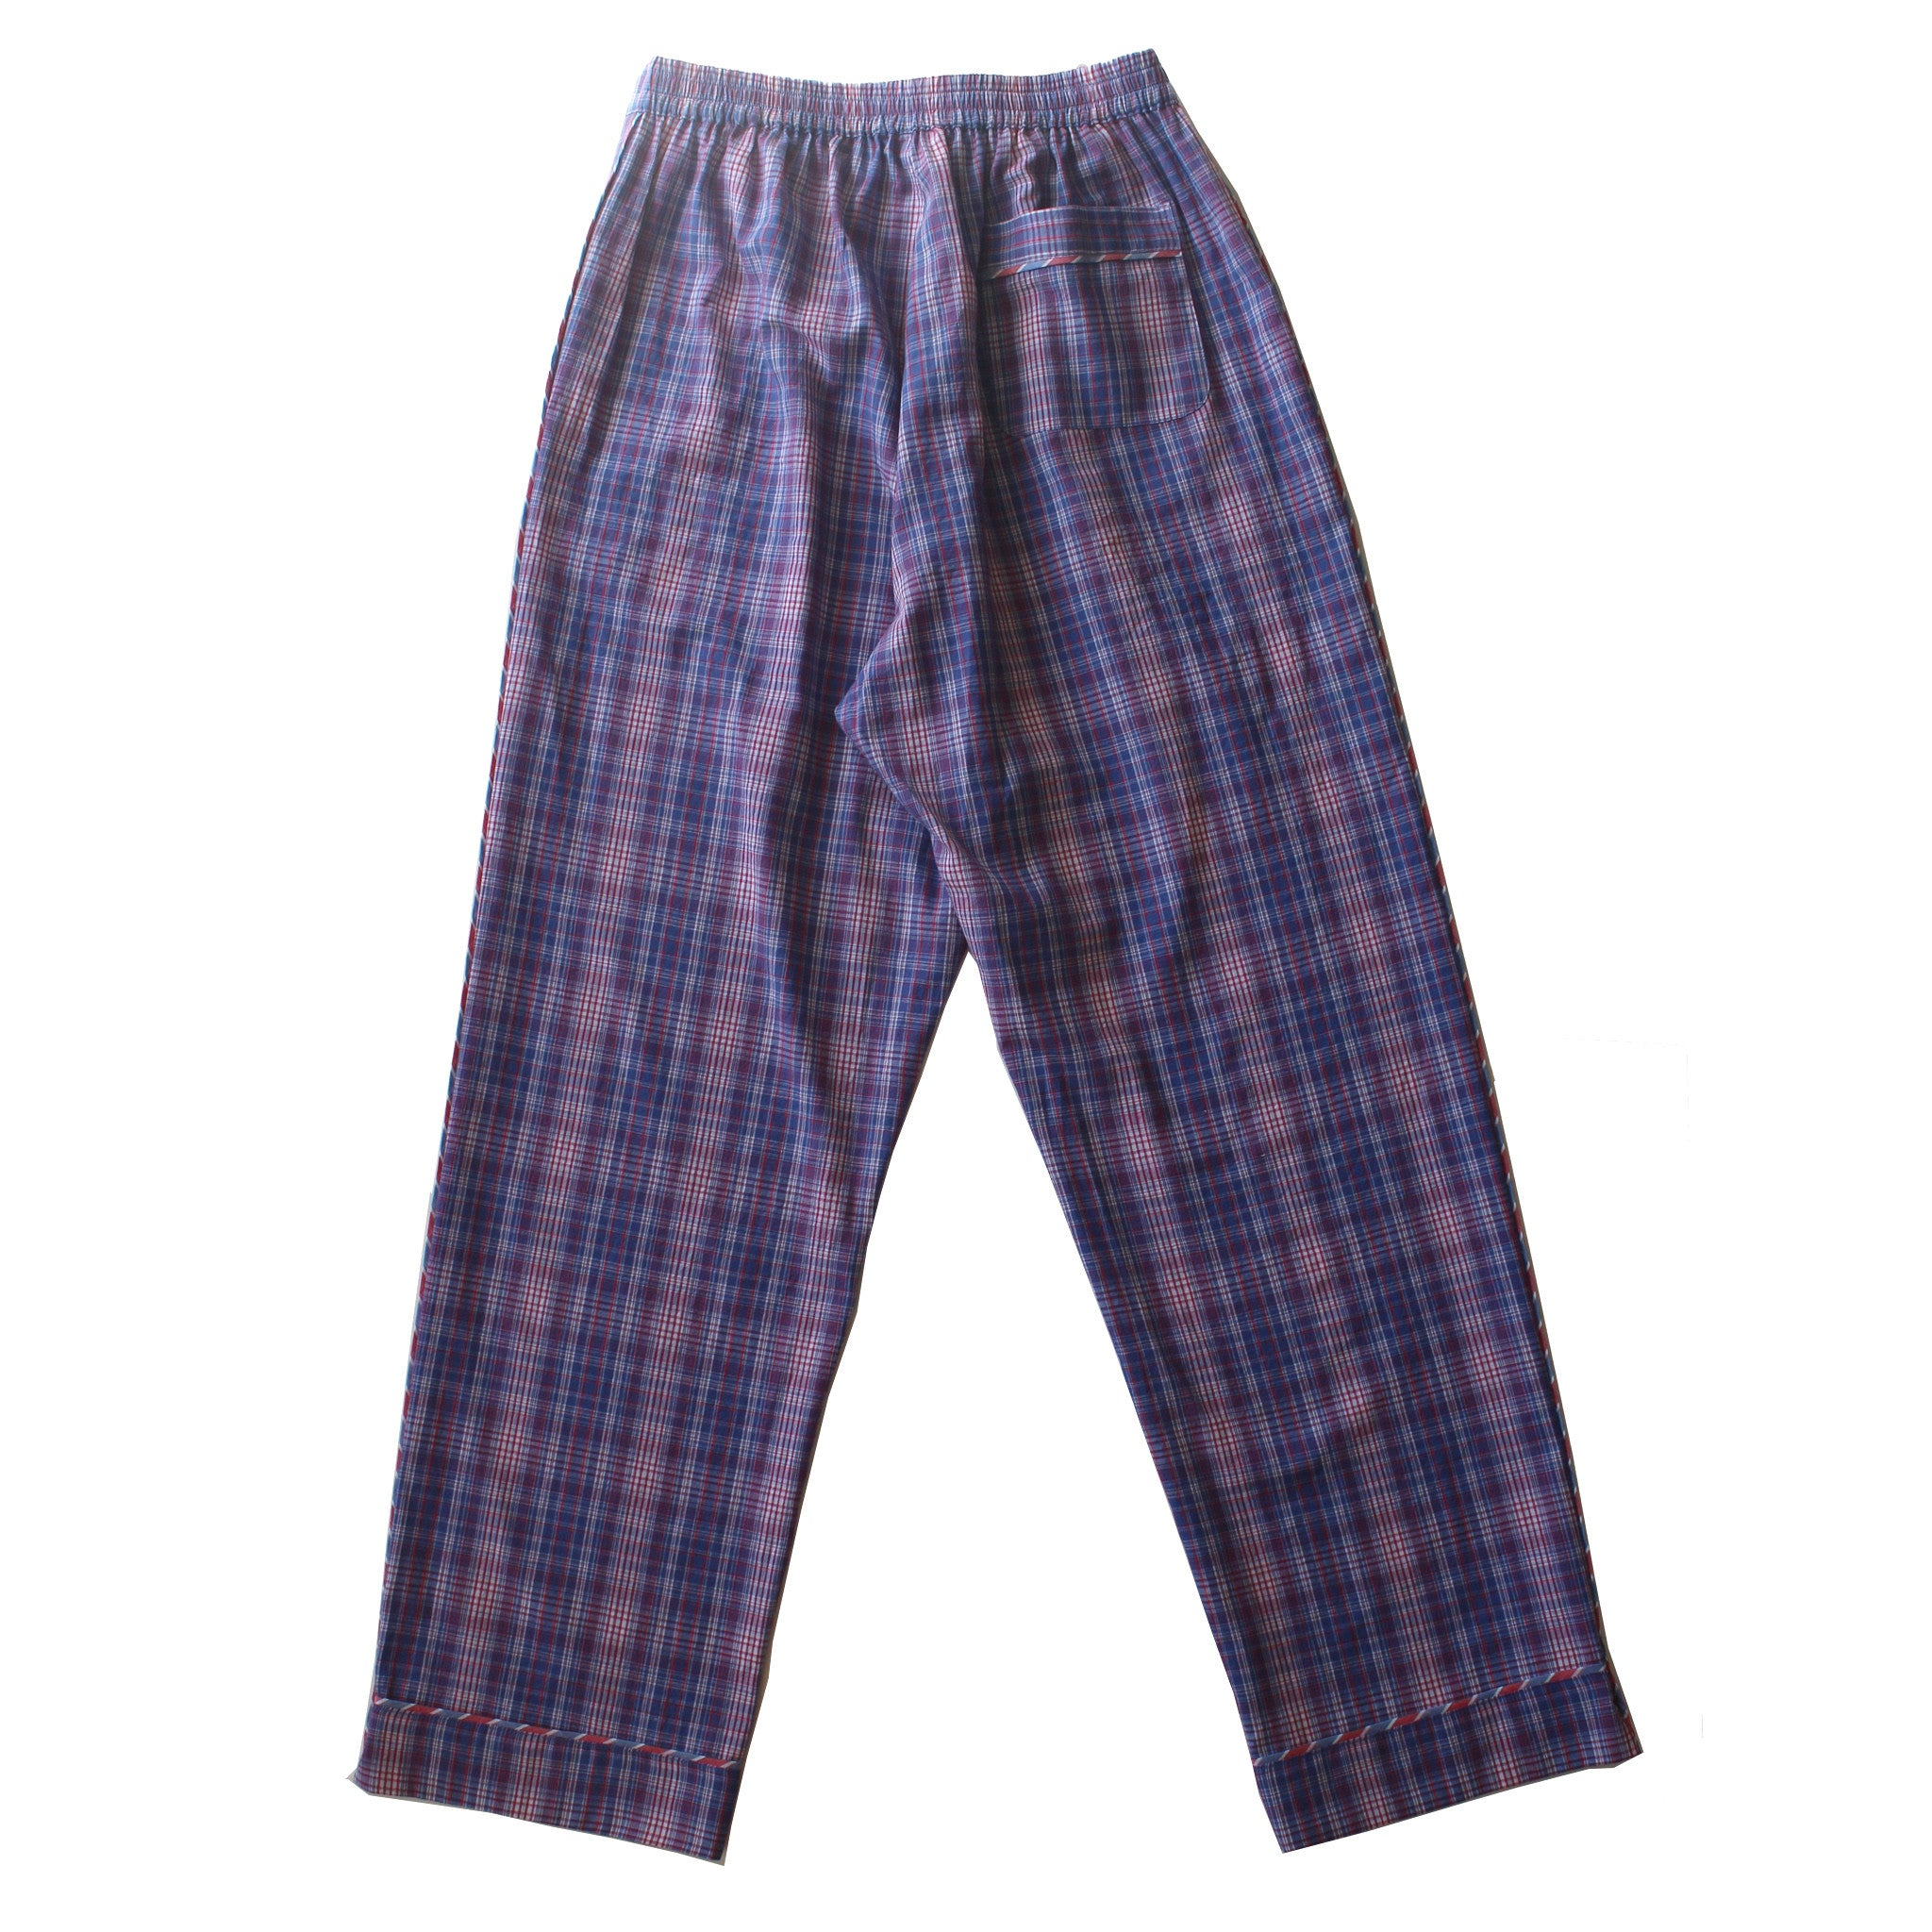 Saturn Pajama Pant in Blue Plaid Italian Cotton